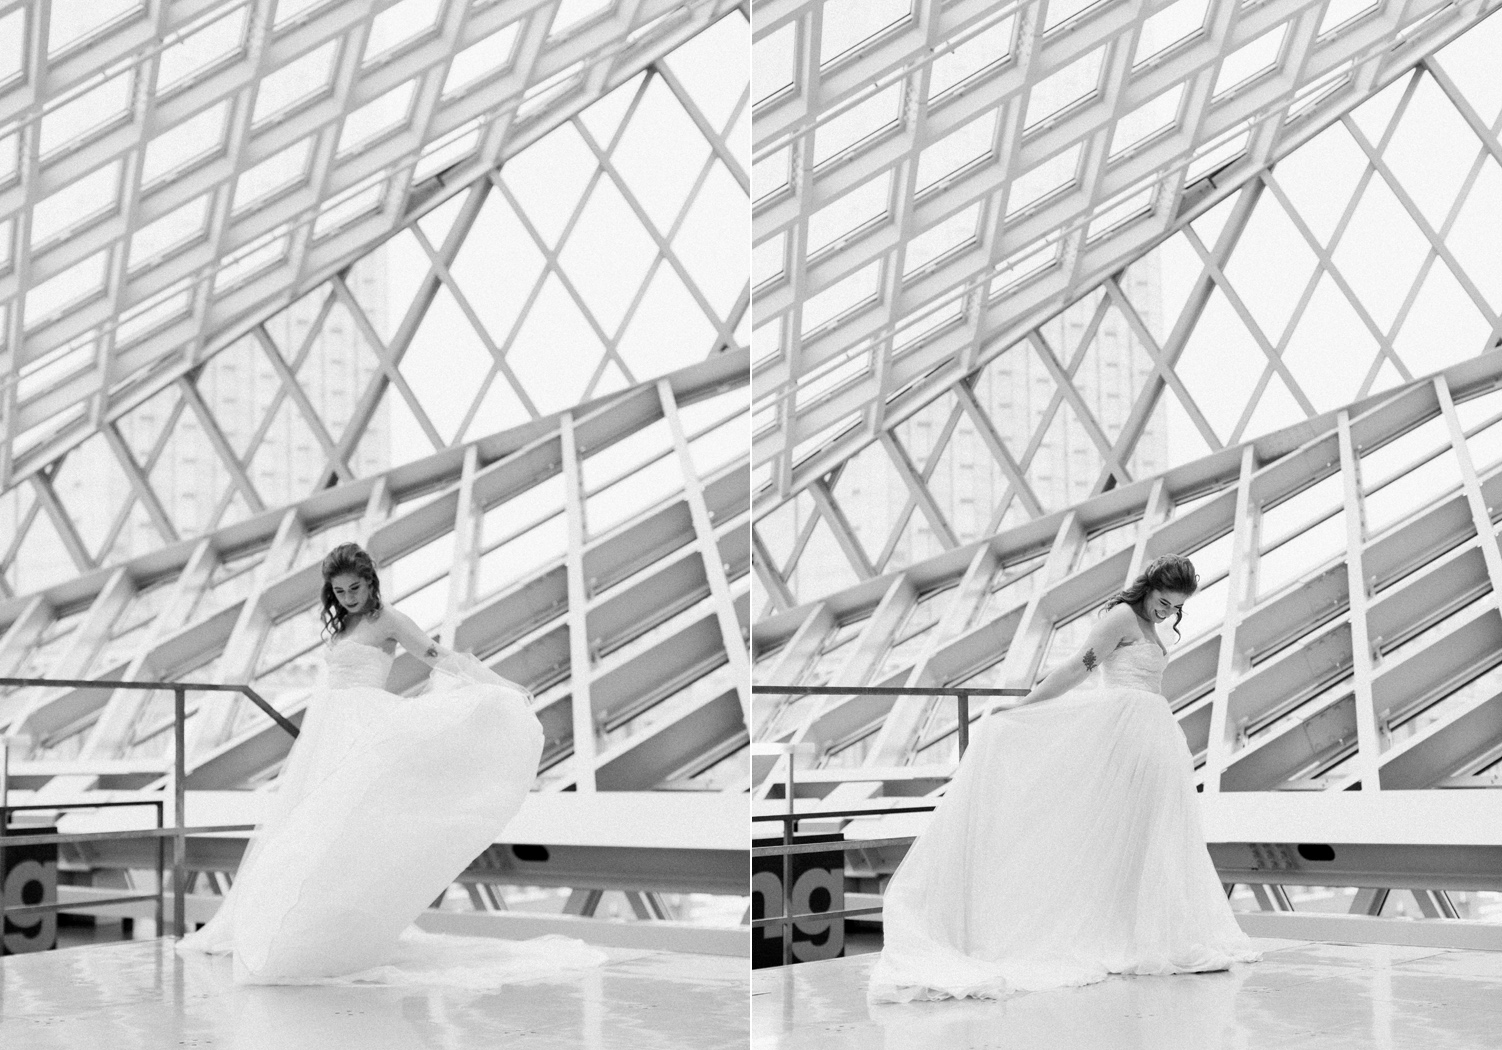 seattle public library wedding photography 4.jpg